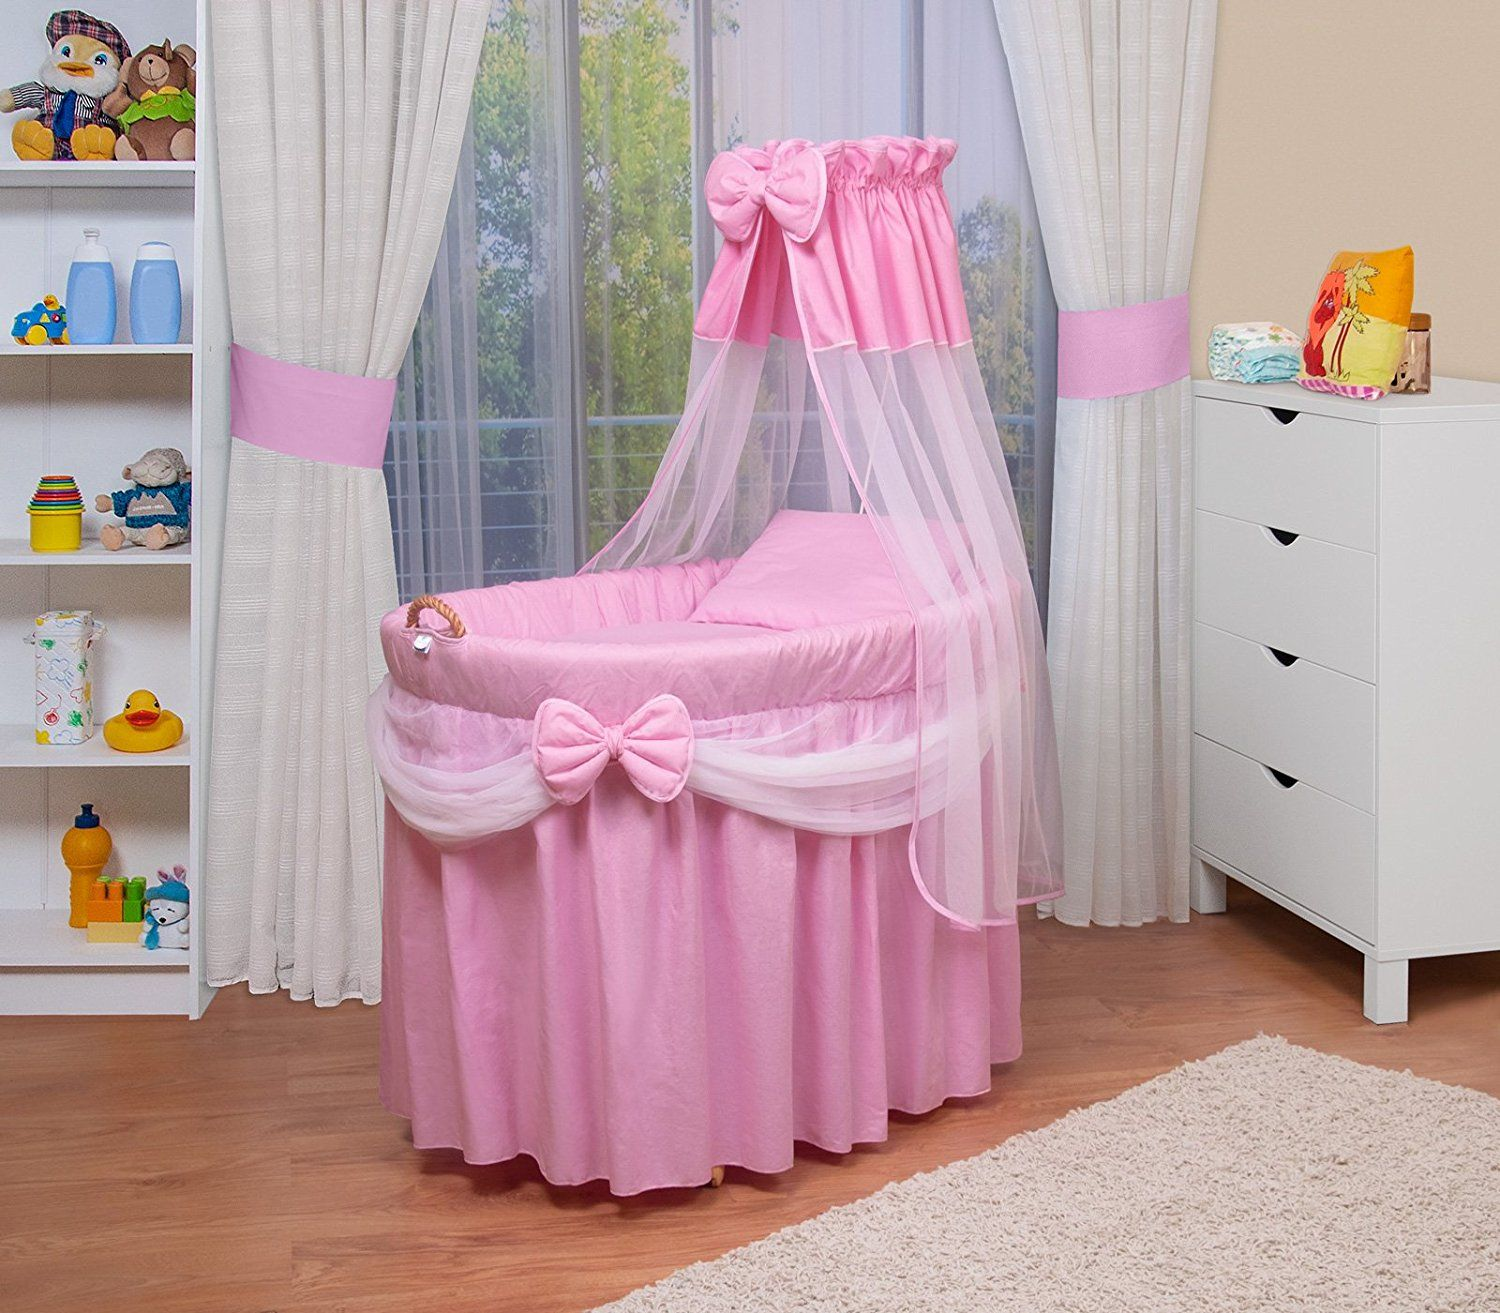 waldin baby stubenwagen set mit ausstattung xxl bollerwagen komplett 4 modelle w hlbar rosa. Black Bedroom Furniture Sets. Home Design Ideas